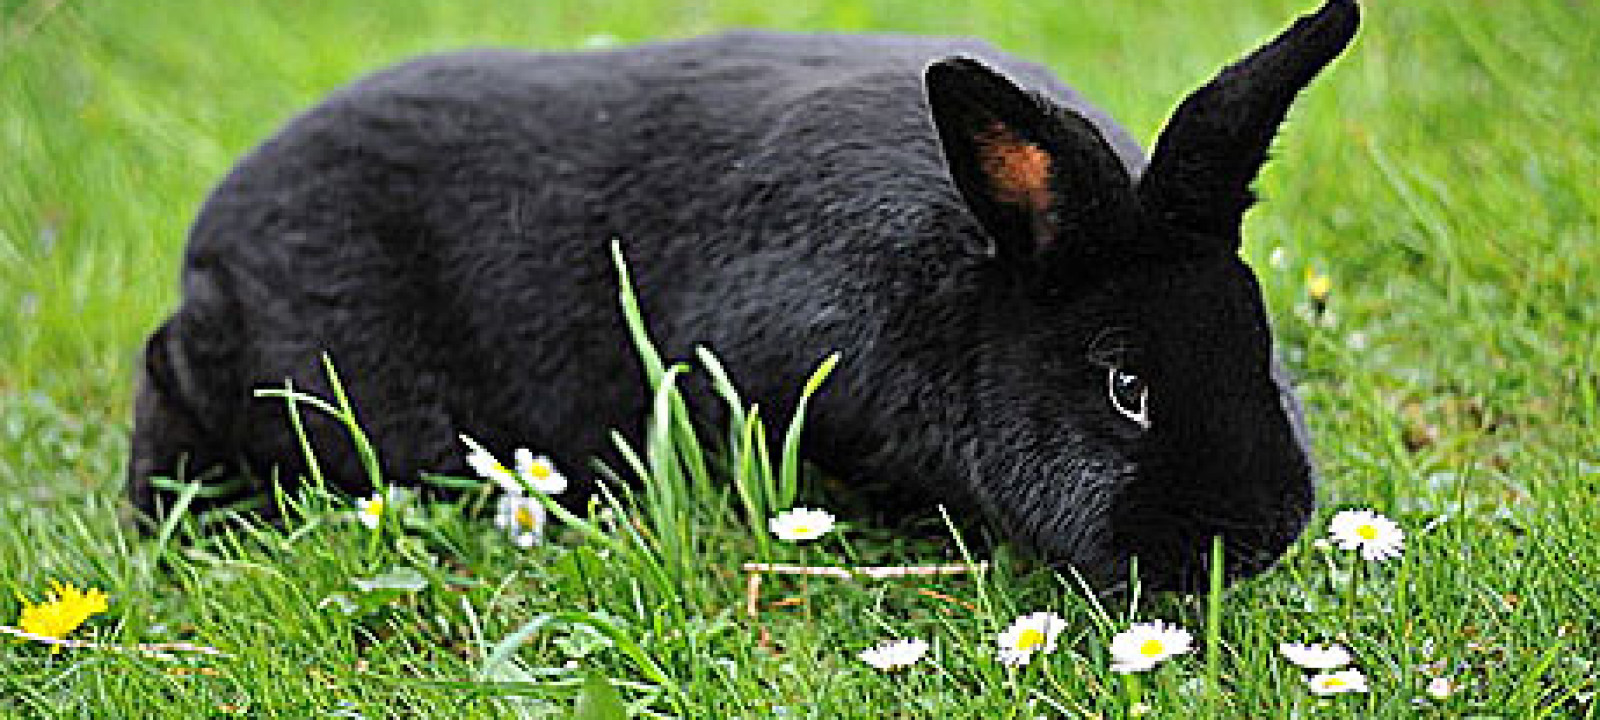 A black rabbit